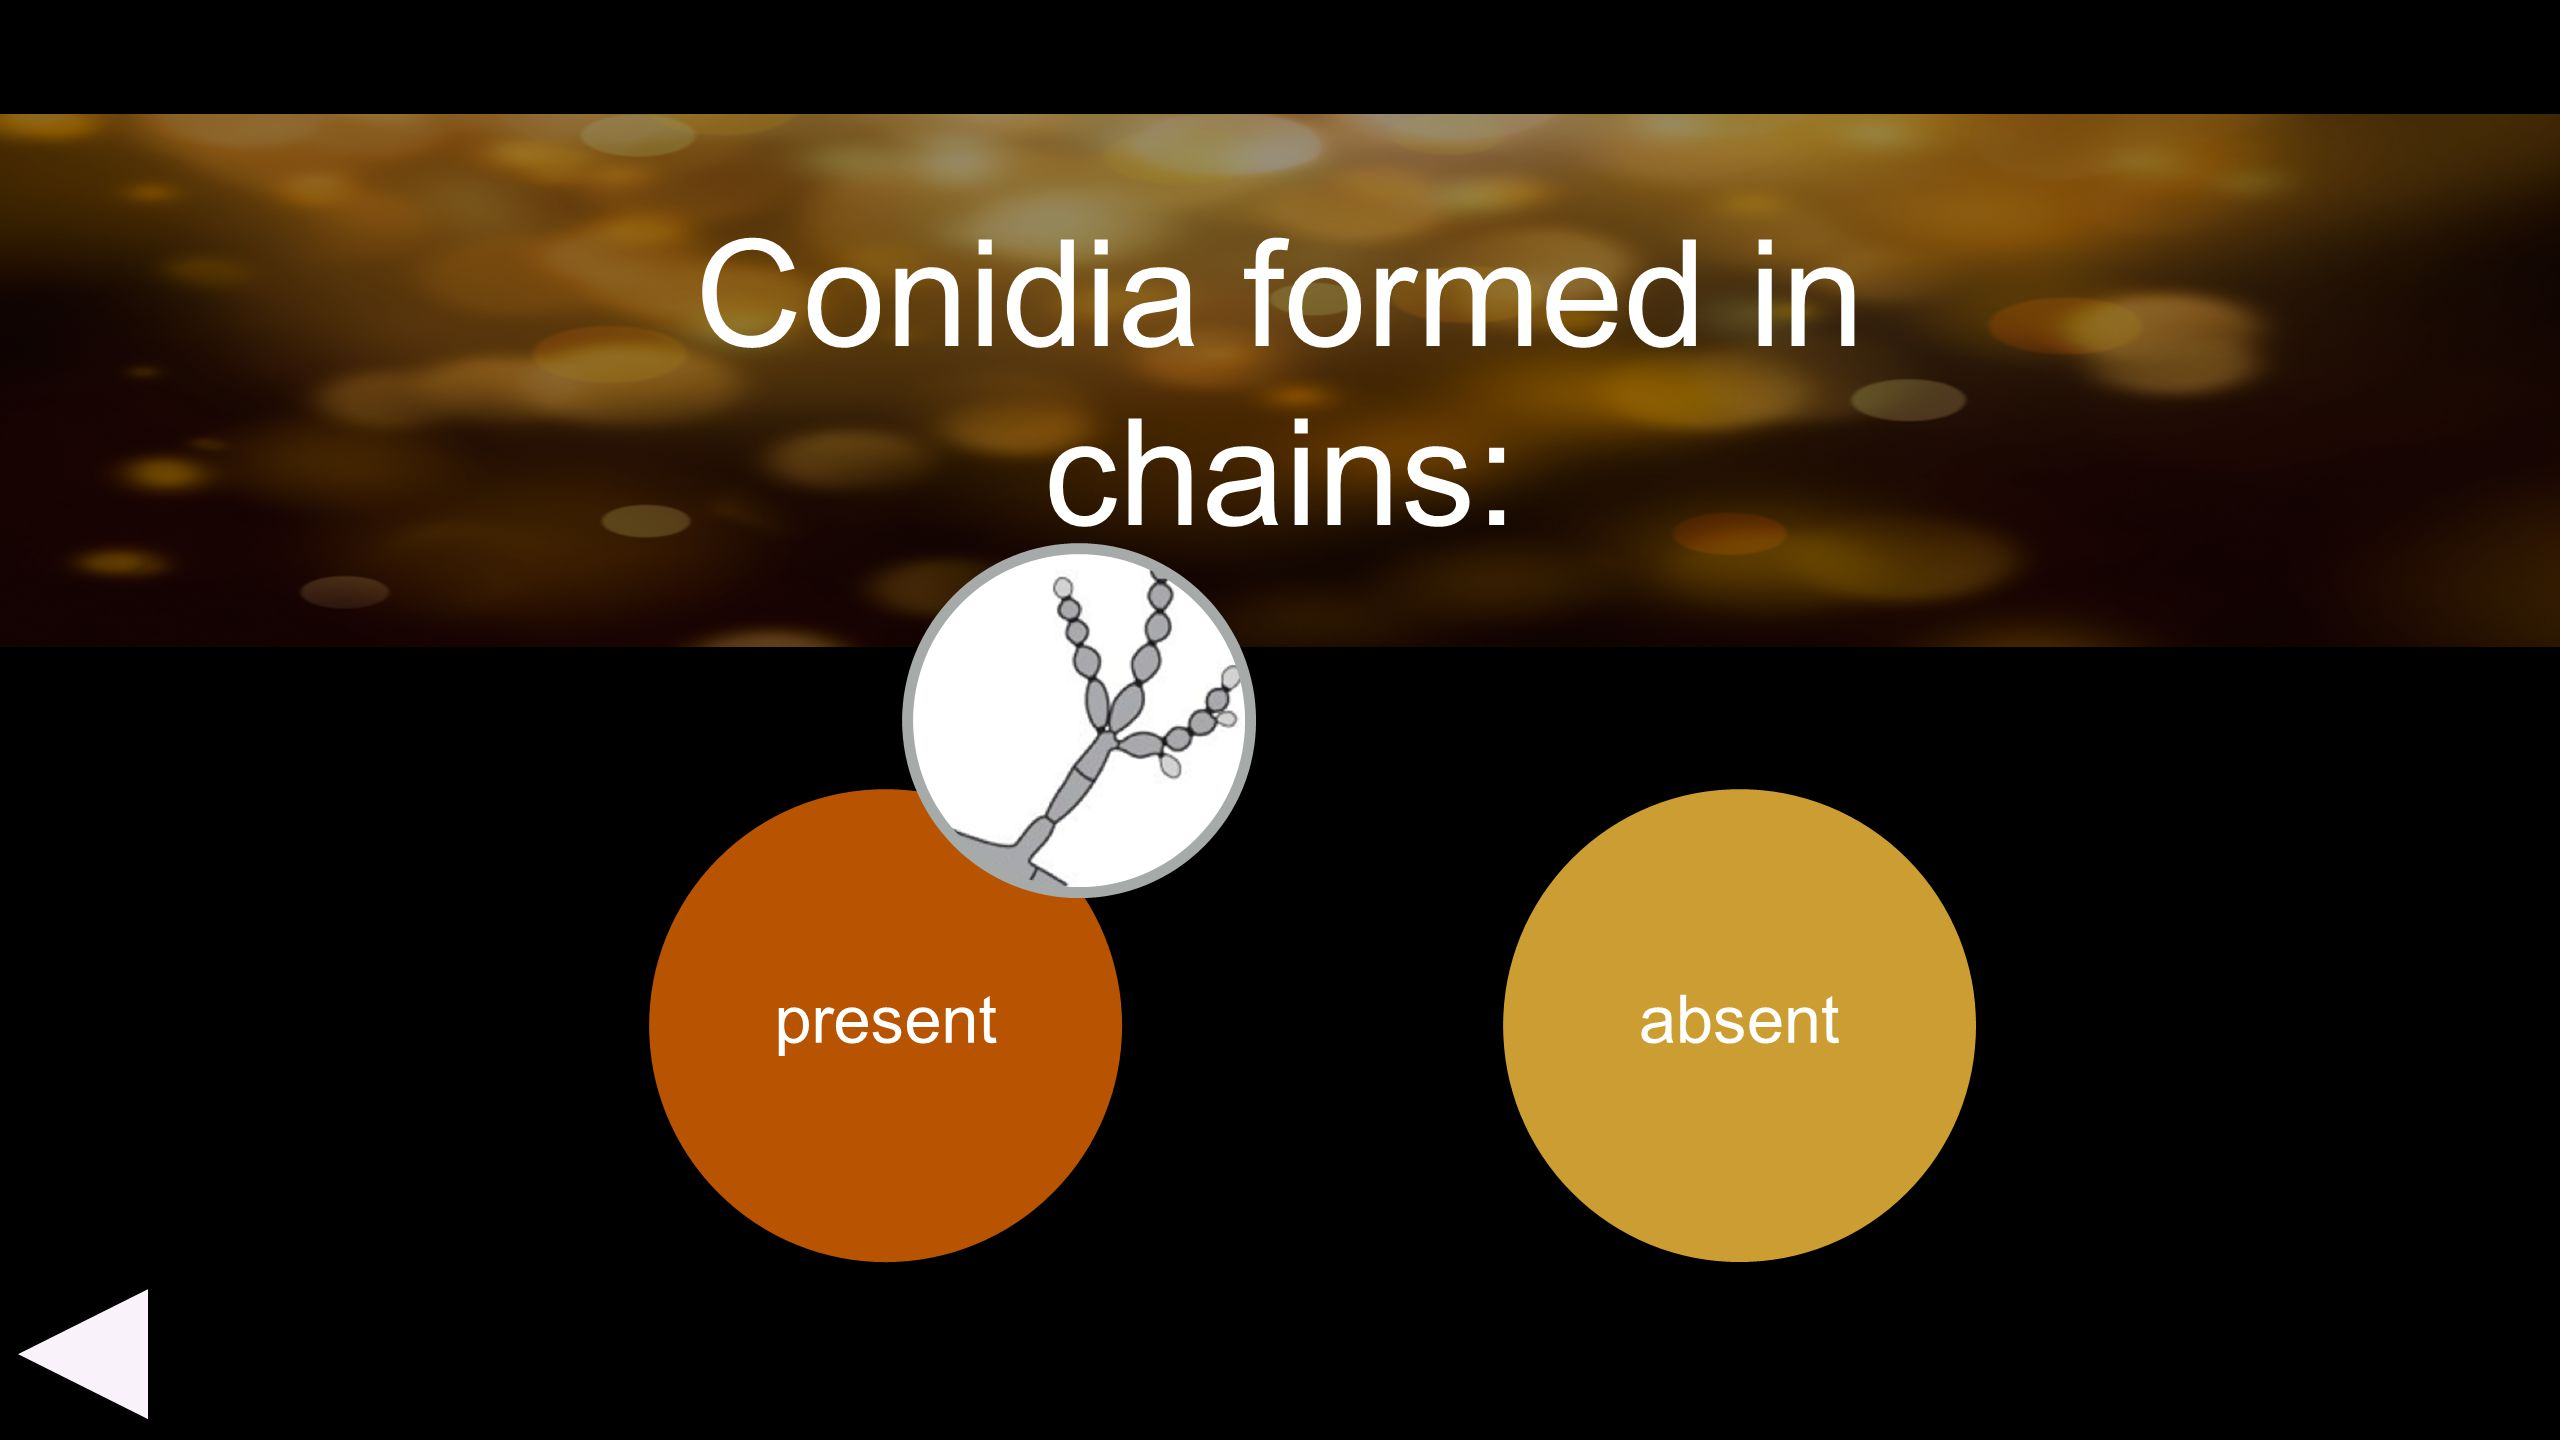 present absent Conidia formed in chains: